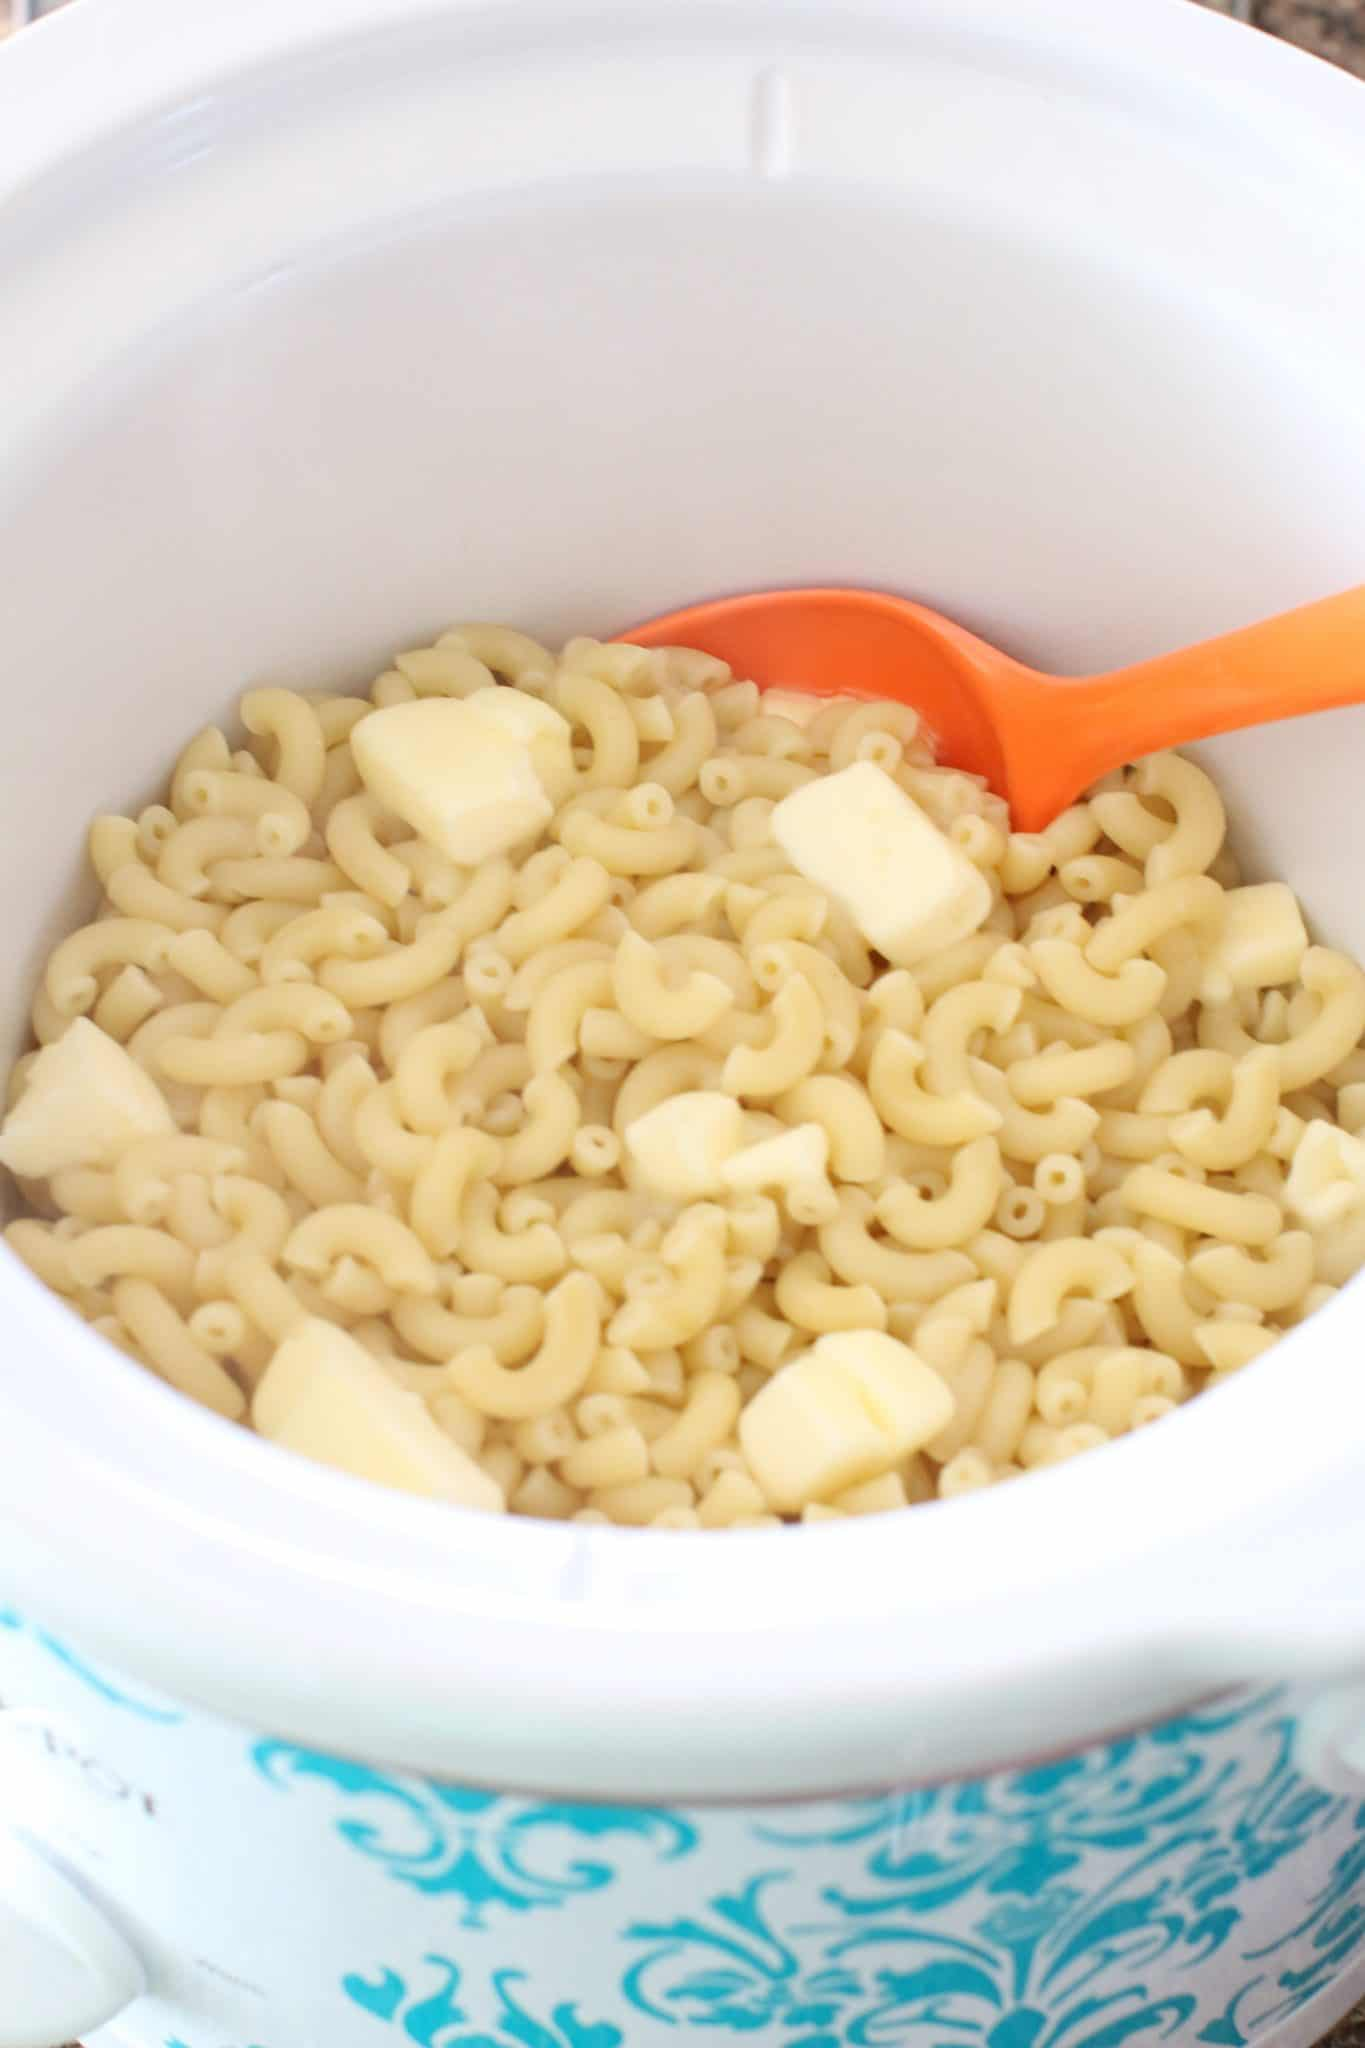 cooked macaroni noodles in a slow cooker with butter on top and a plastic orange spoon inserted into the noodles.